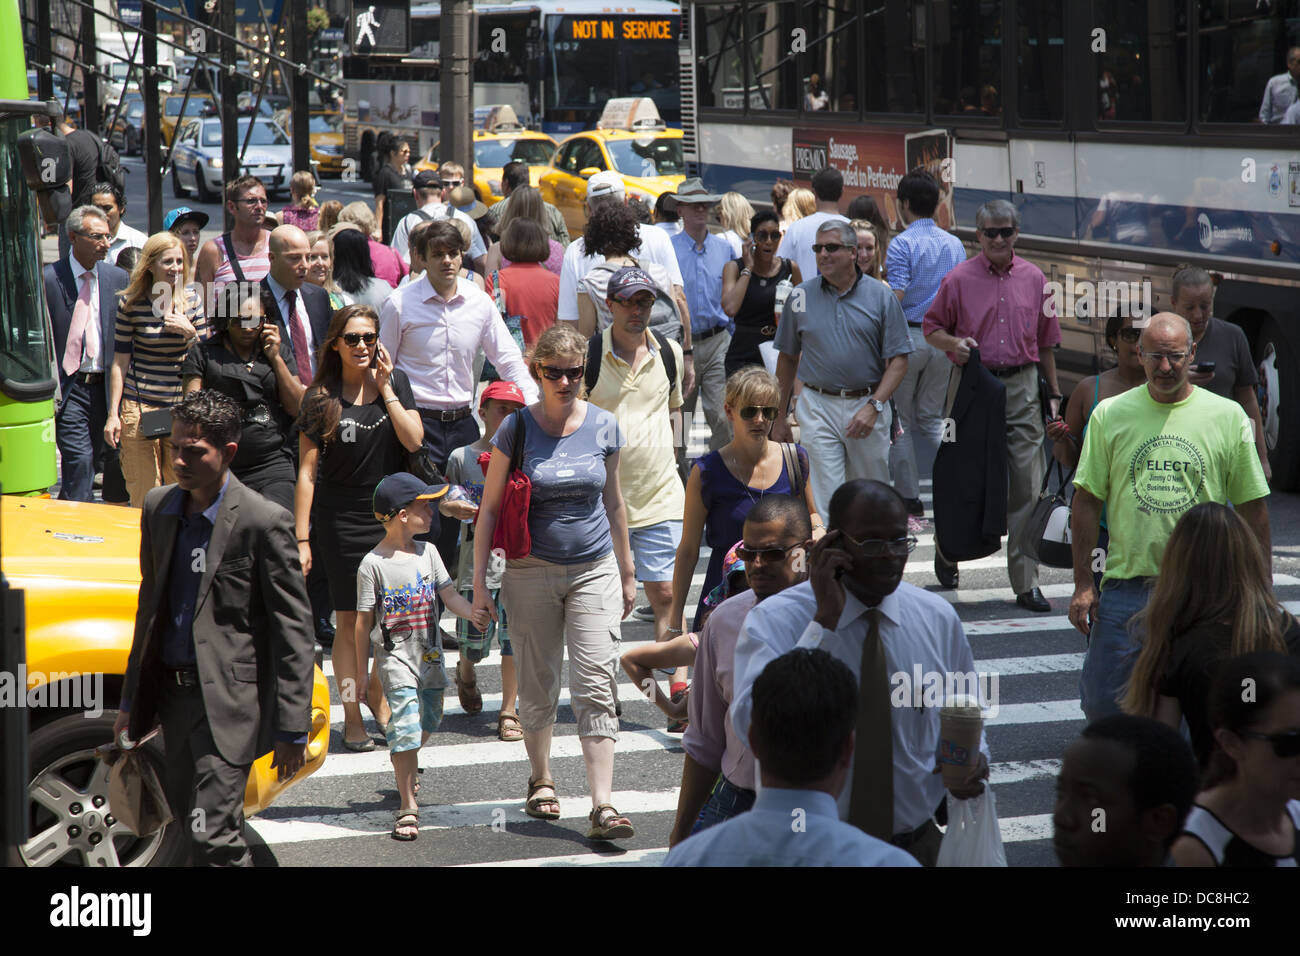 People cross the street at the always crowded intersection of 5th Avenue & 42nd Street, New York City. - Stock Image